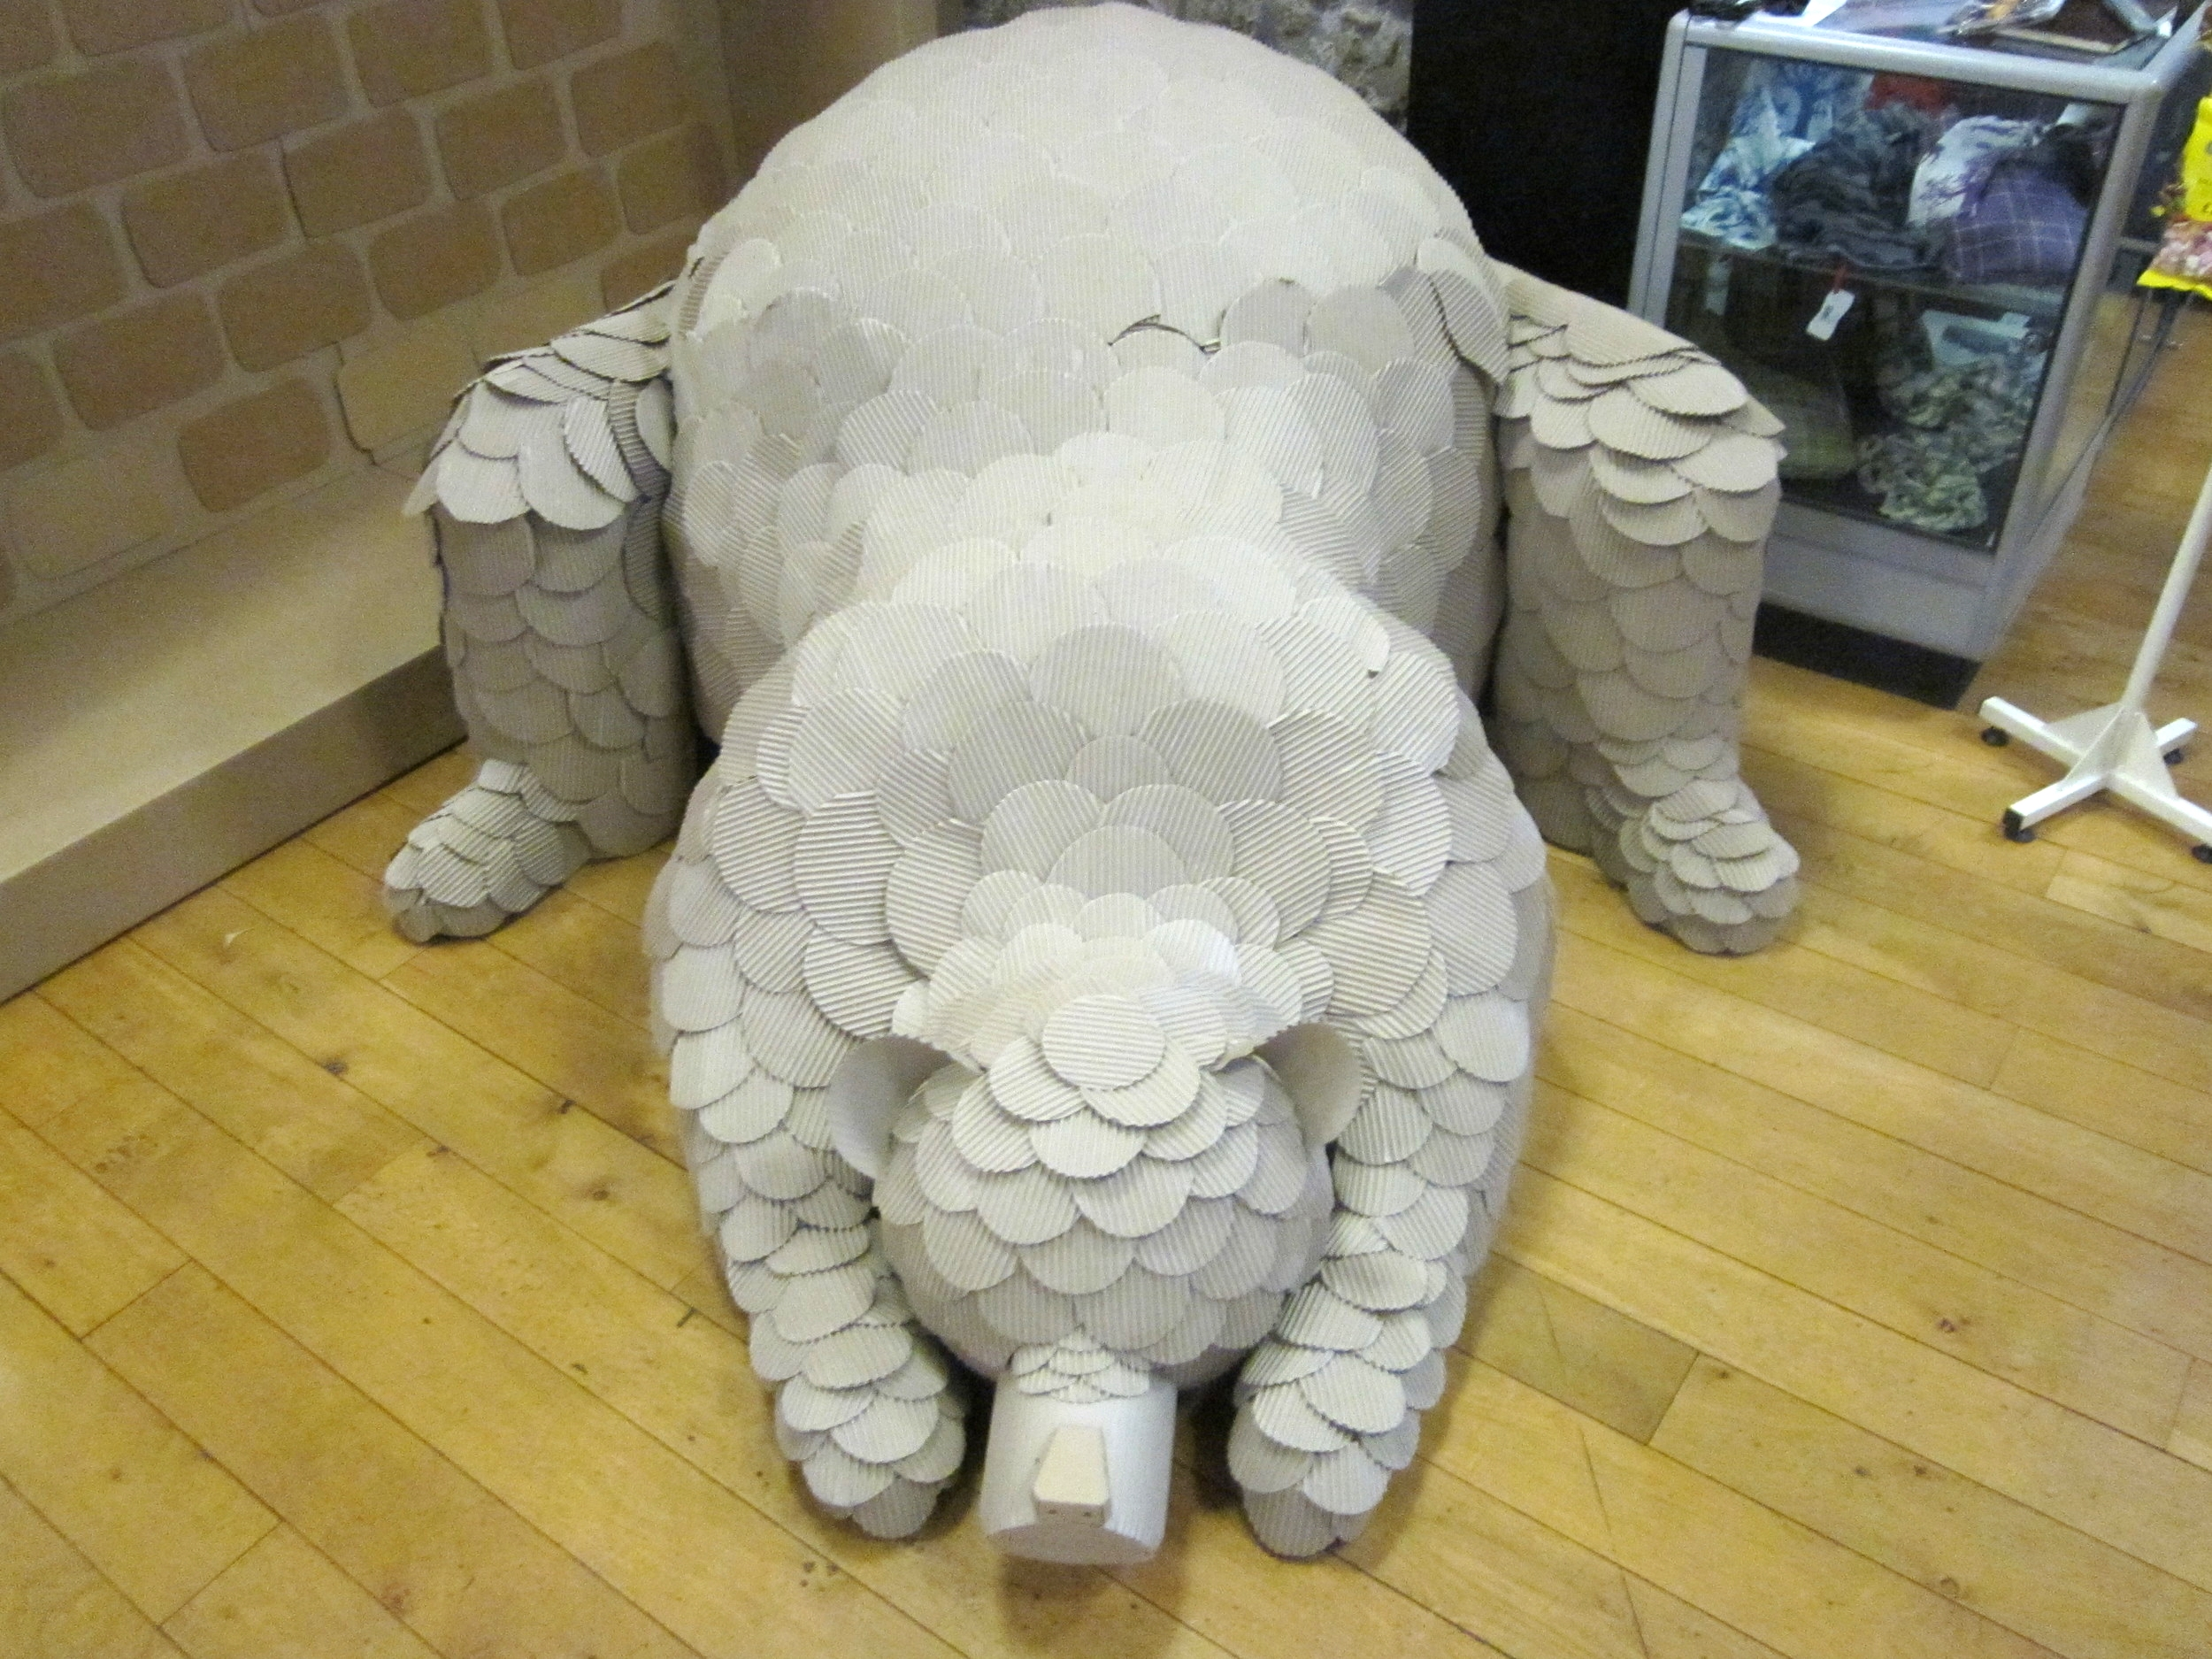 A life-sized polar bear sculpture made entirely from cardboard, the sculpture was part of an installation for Gateshead councils winter festival 2015